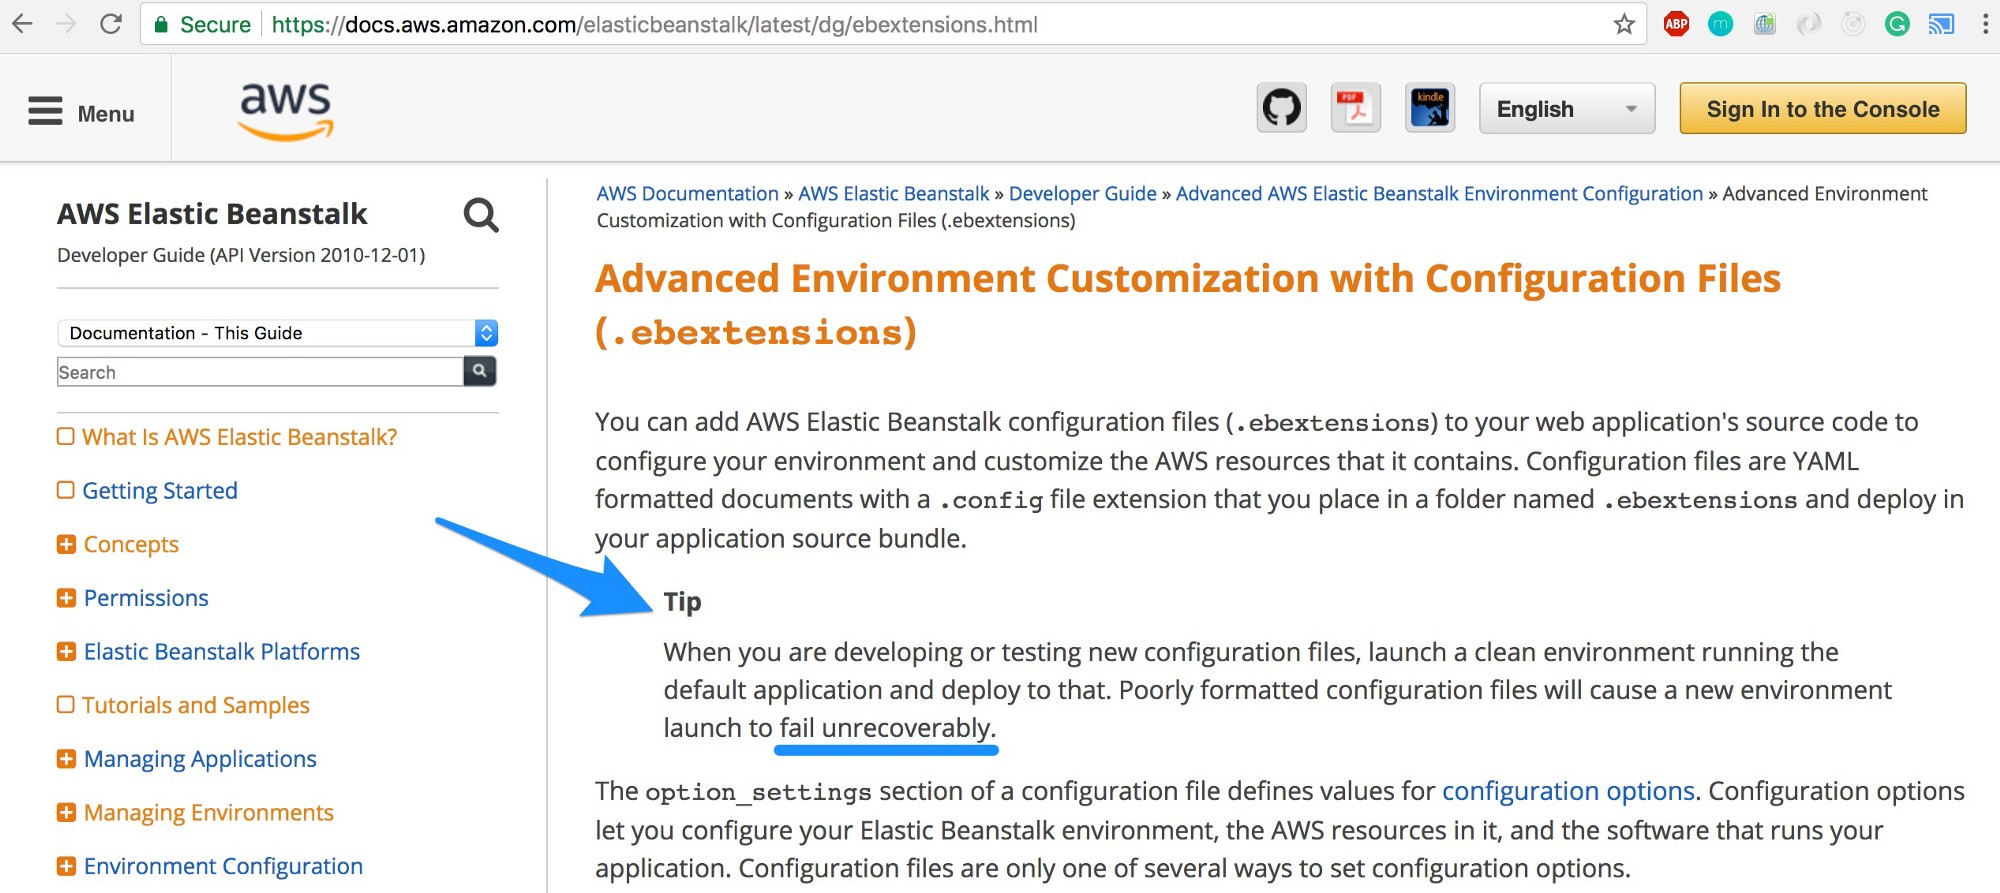 Beginner's Guide to AWS Elastic Beanstalk using Node js